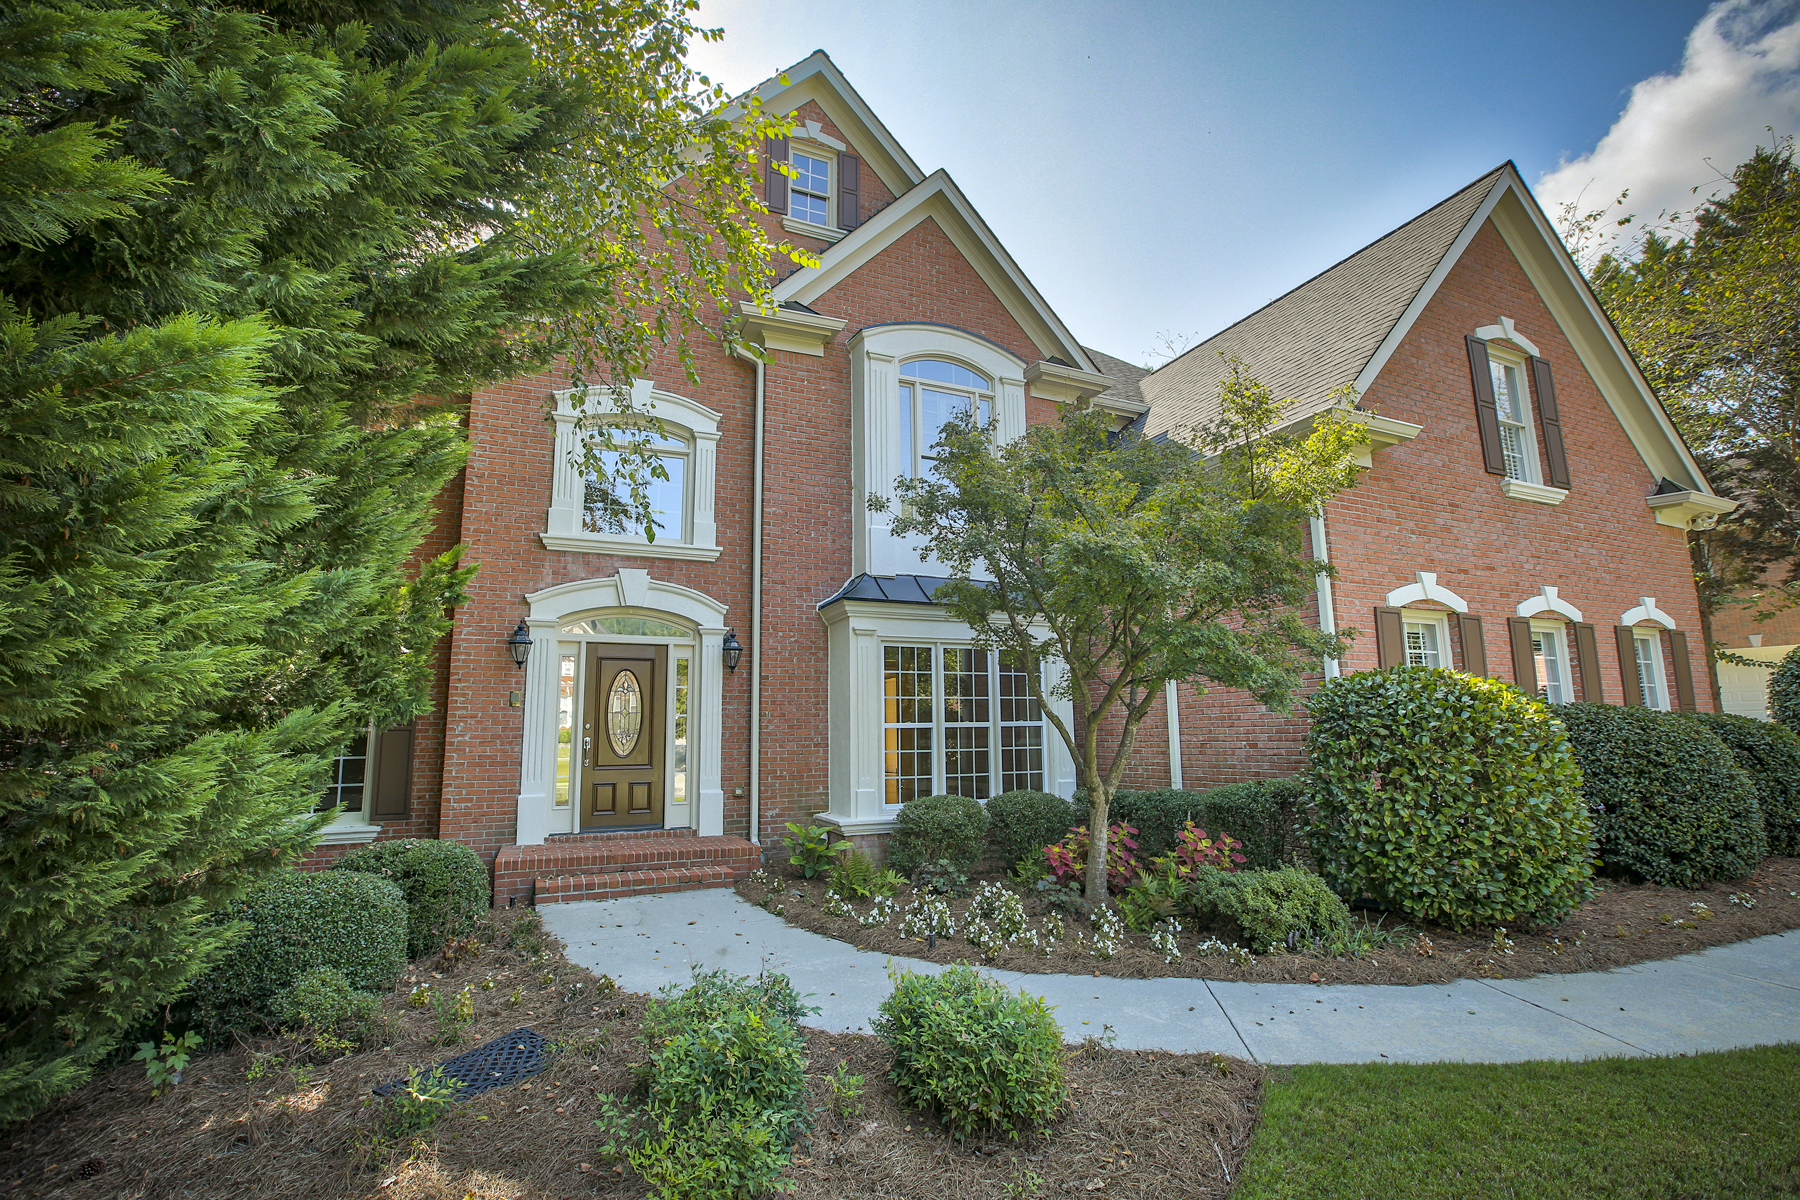 Single Family Home for Sale at Elegantly Renovated Brick Traditional With Finished Terrace Level 9475 Stoney Ridge Lane Alpharetta, Georgia 30022 United States